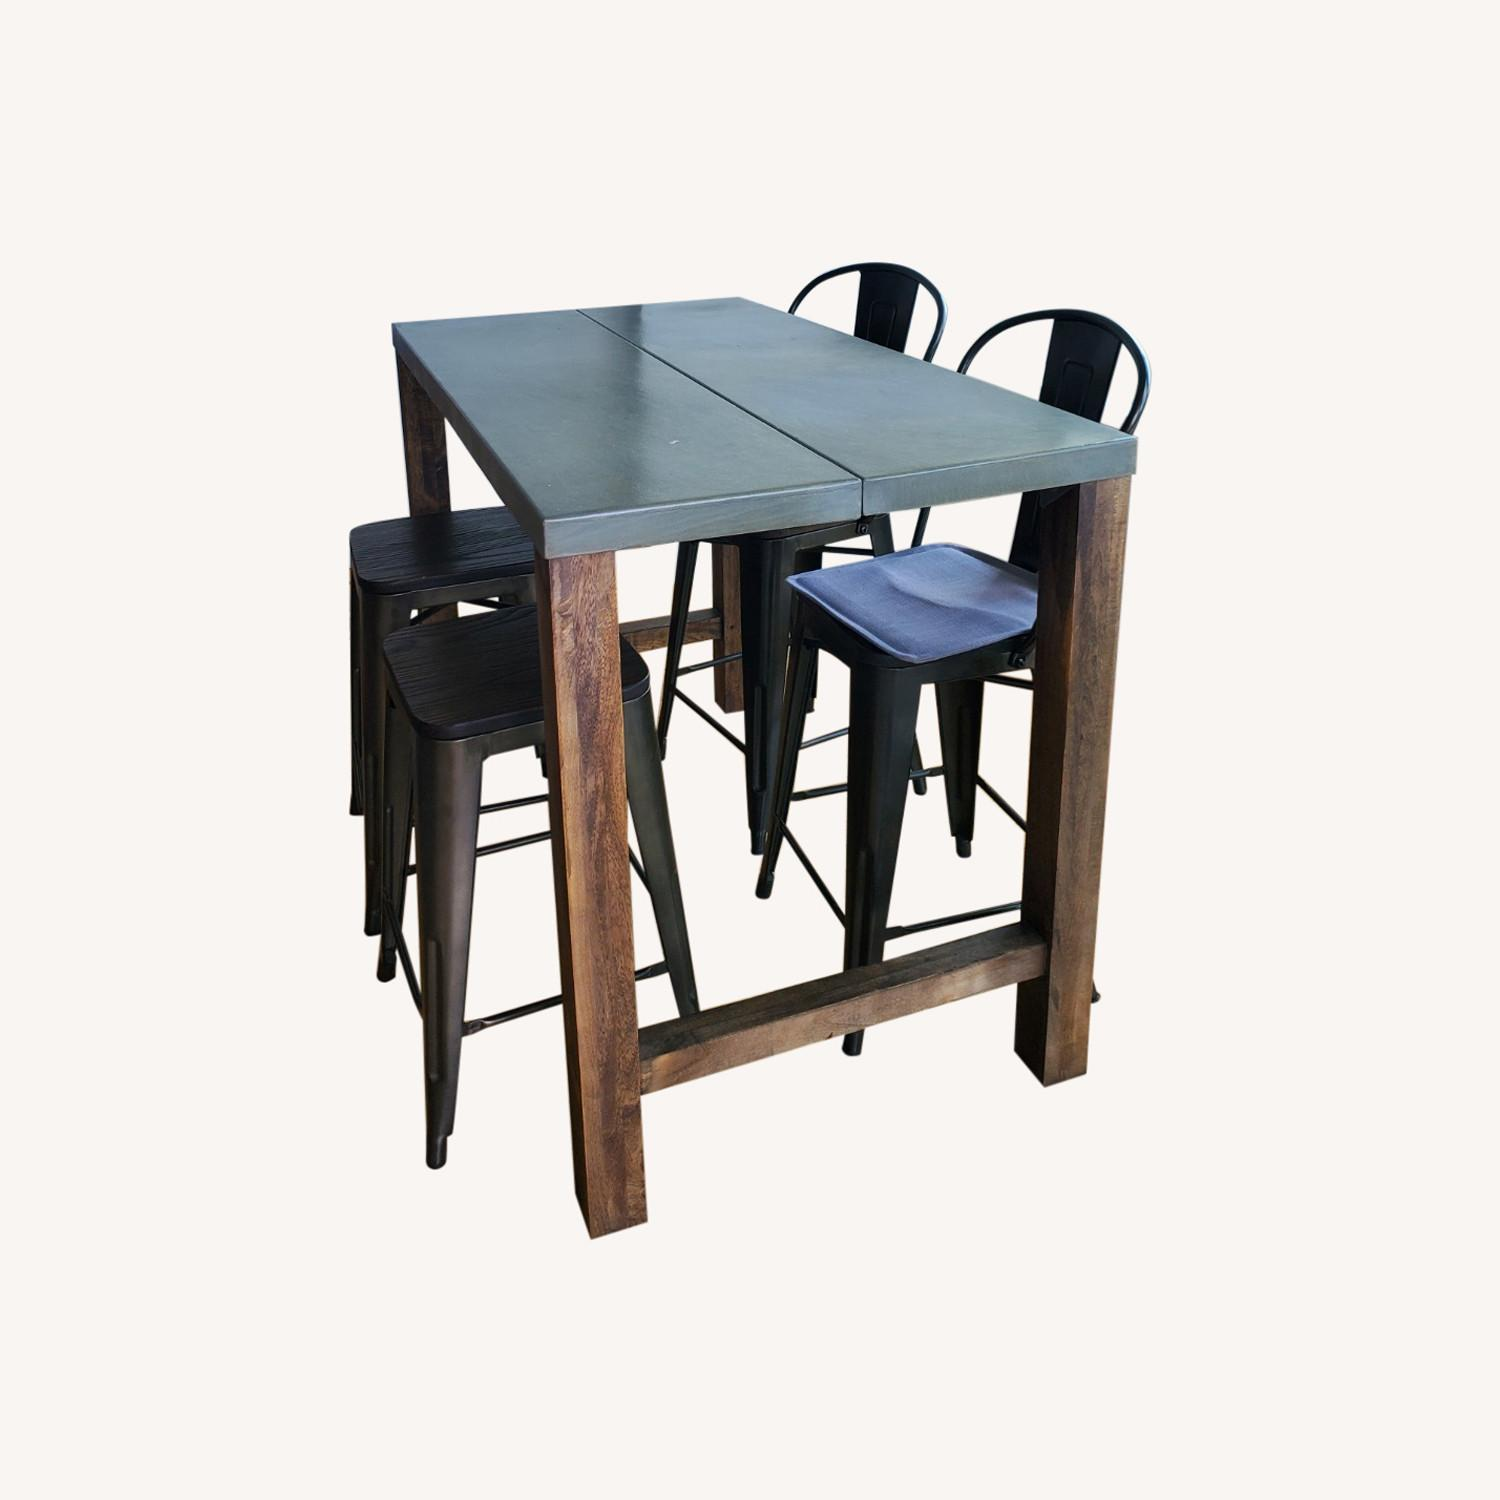 CB2 Industrial Dining Table & Chairs - image-0